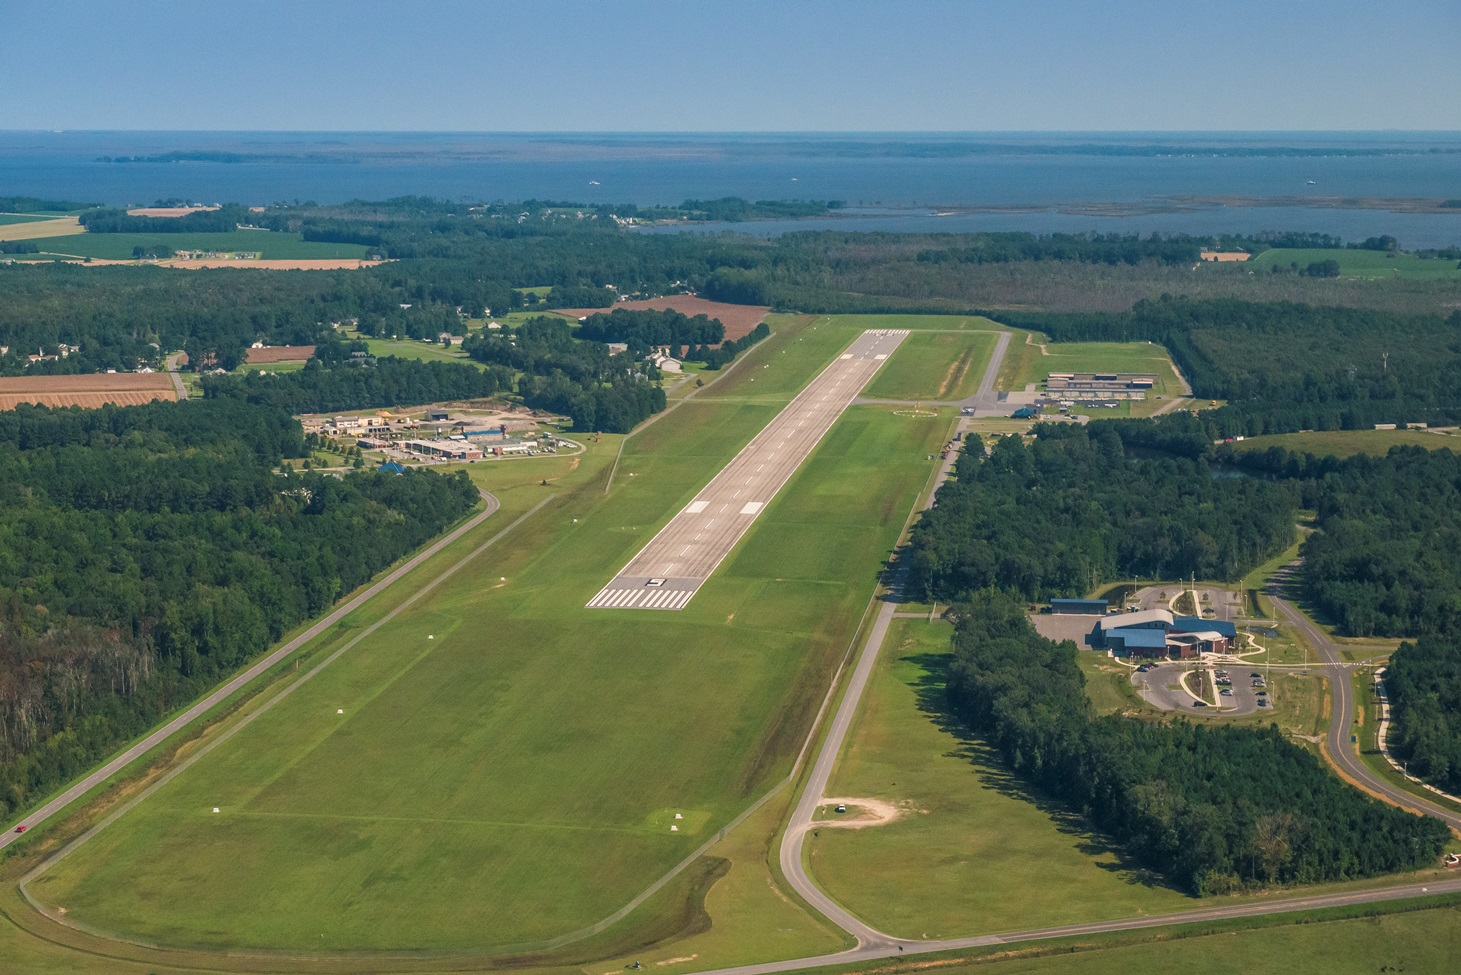 Airport_Aerial_Small